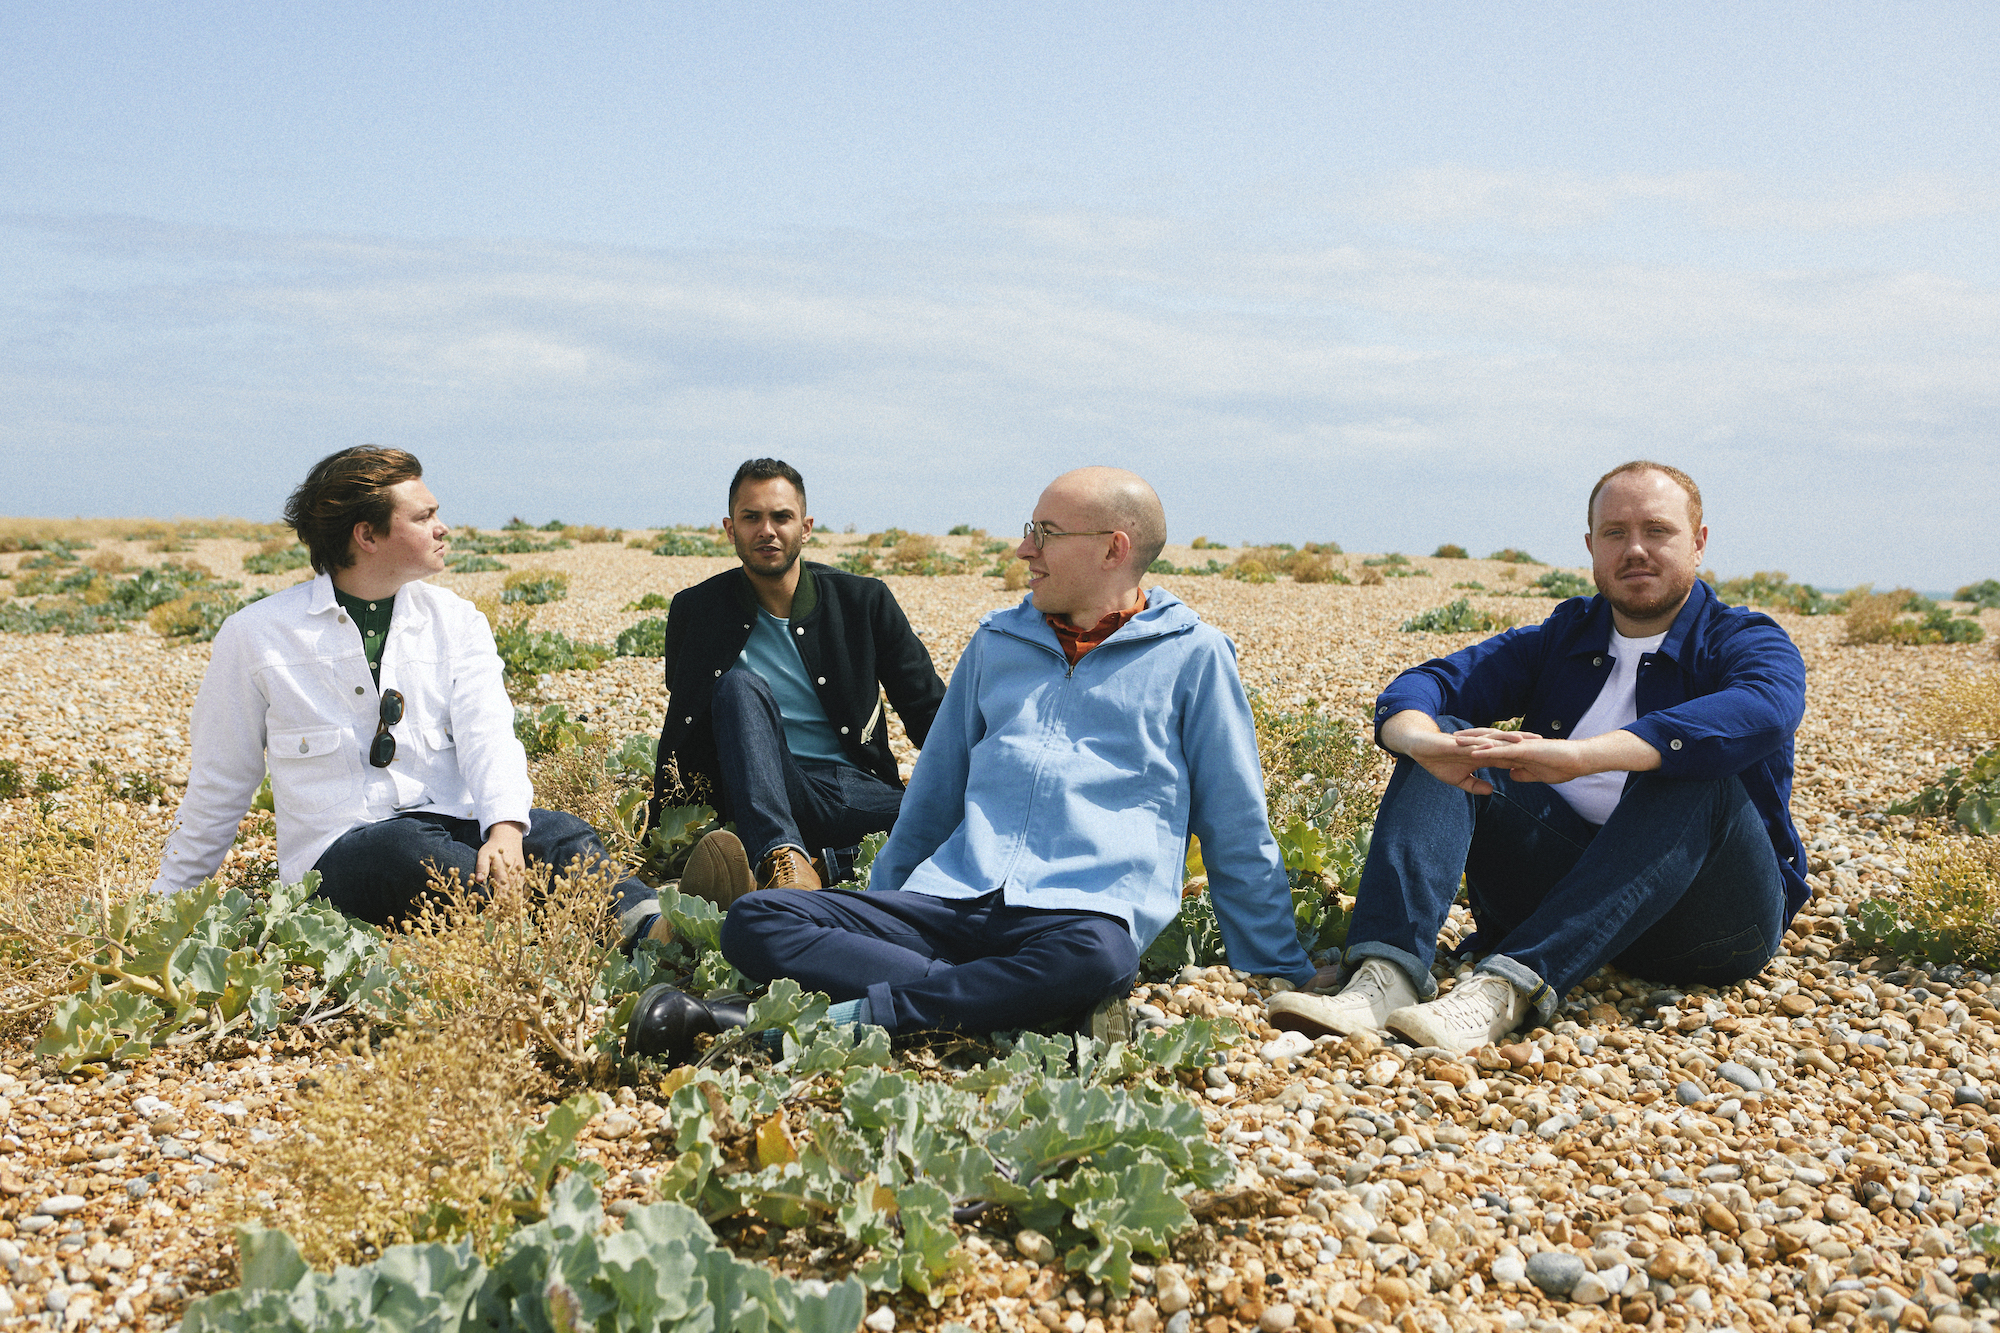 Bombay Bicycle Club release new track 'Is It Real'